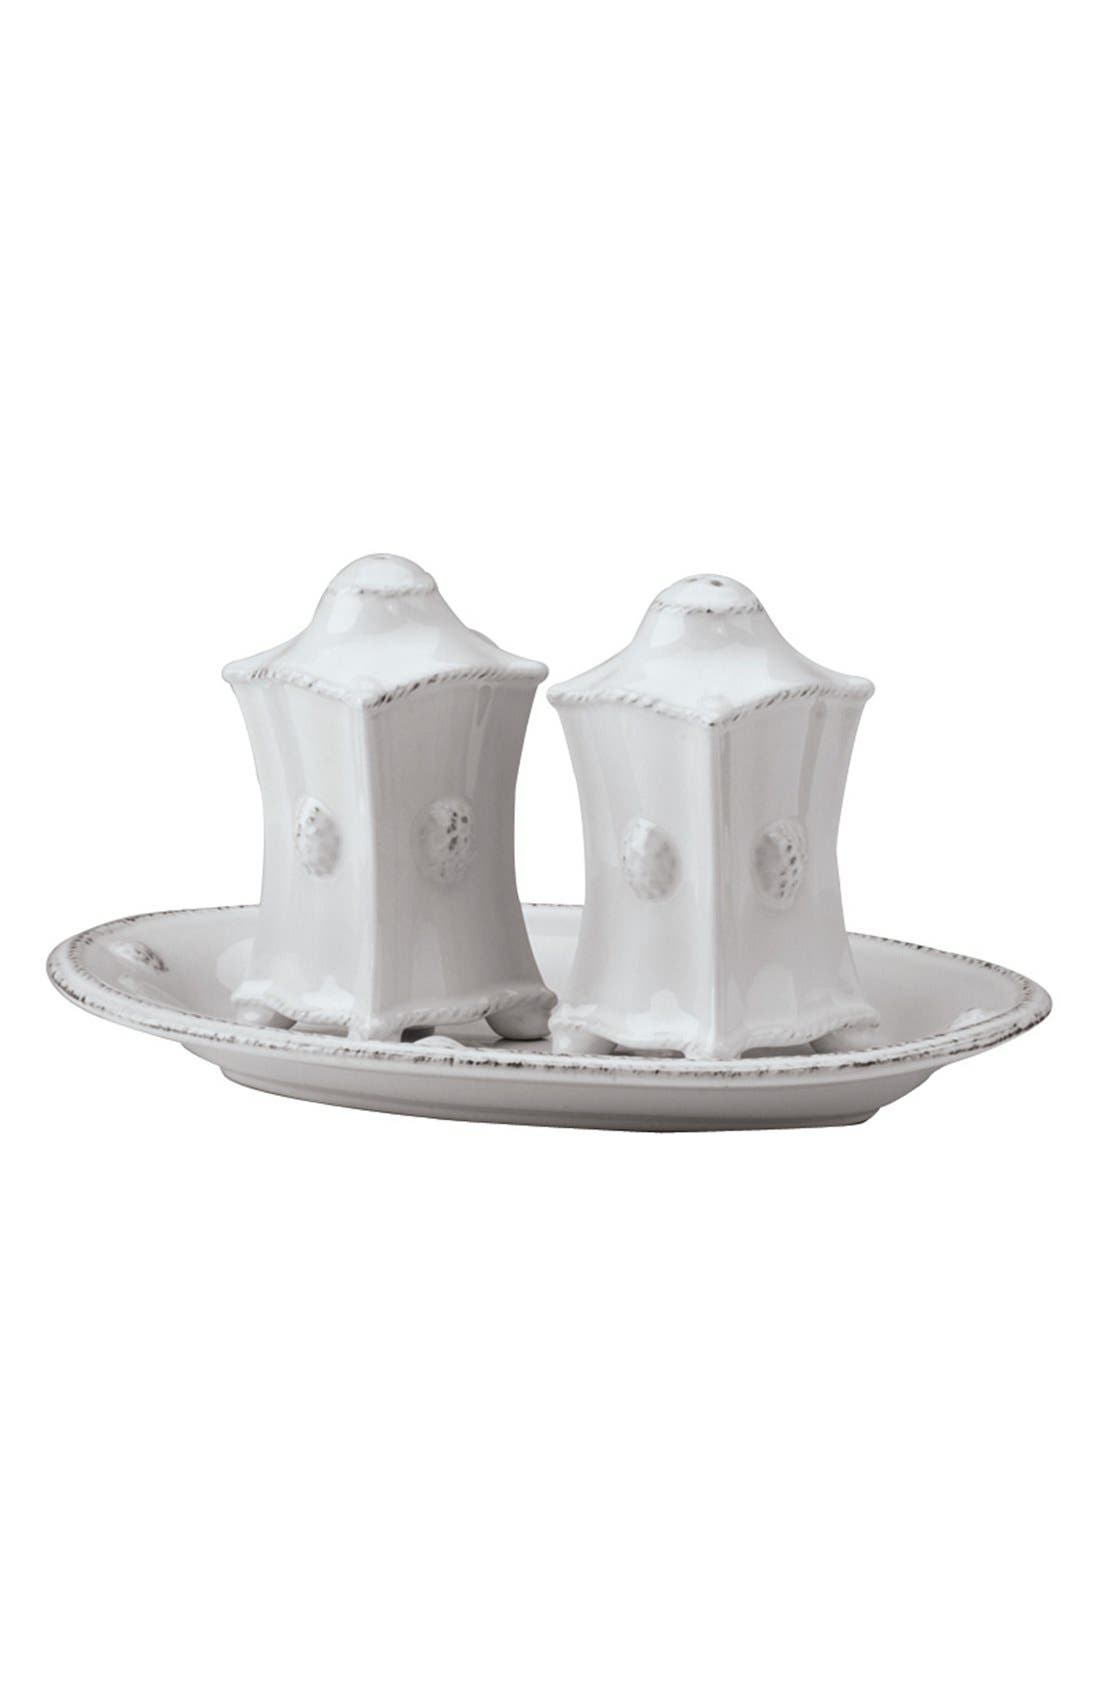 'Berry and Thread' Ceramic Salt & Pepper Shakers,                         Main,                         color,